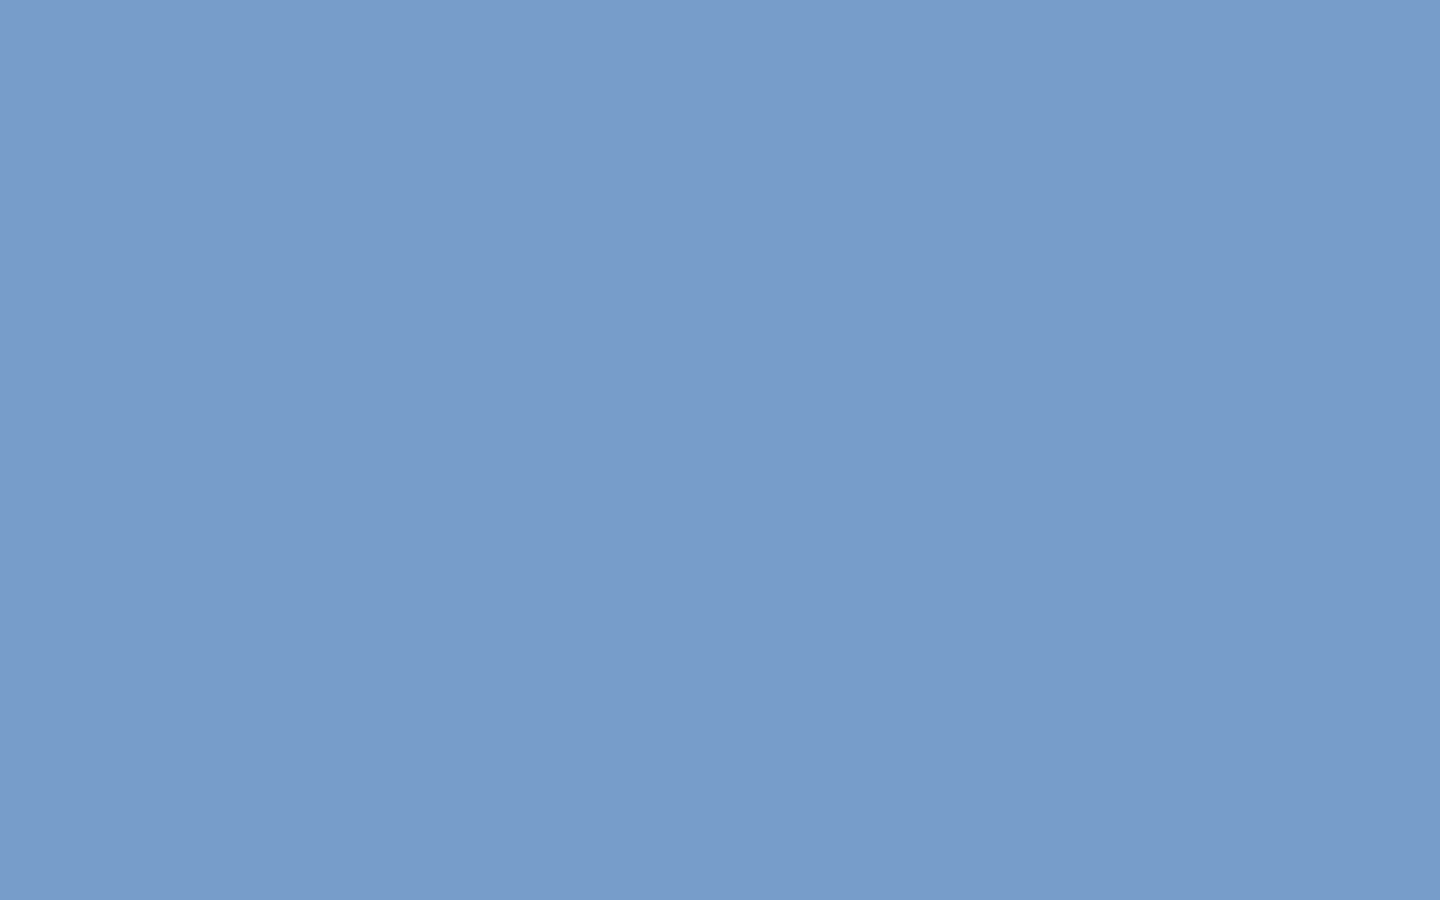 1440x900 Dark Pastel Blue Solid Color Background